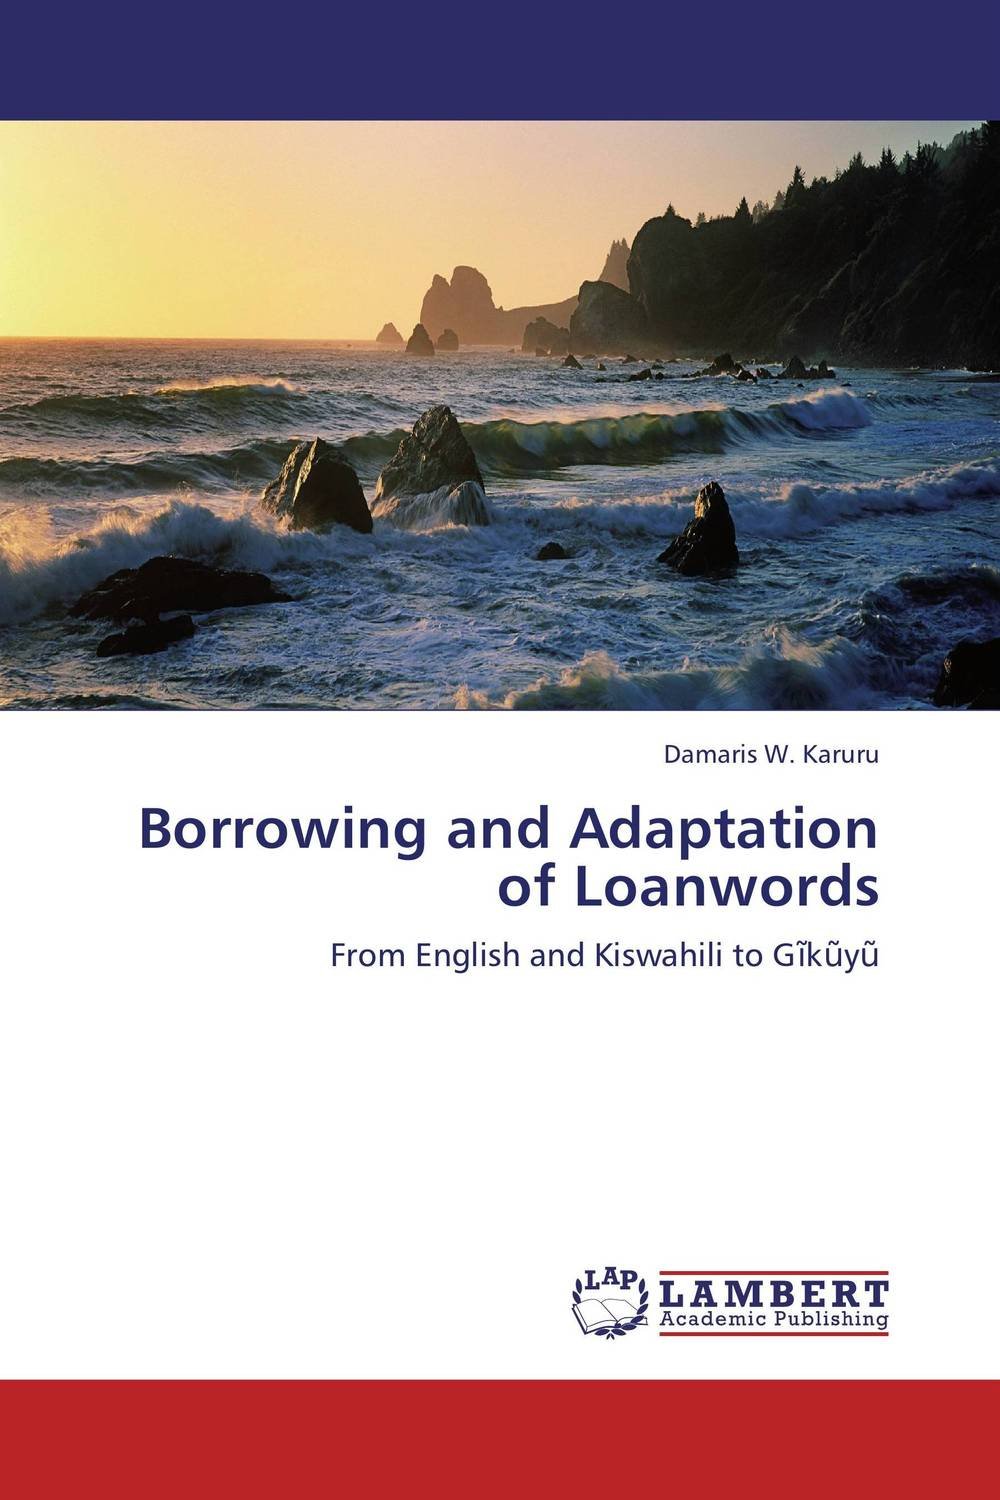 Borrowing and Adaptation of Loanwords borrowed time